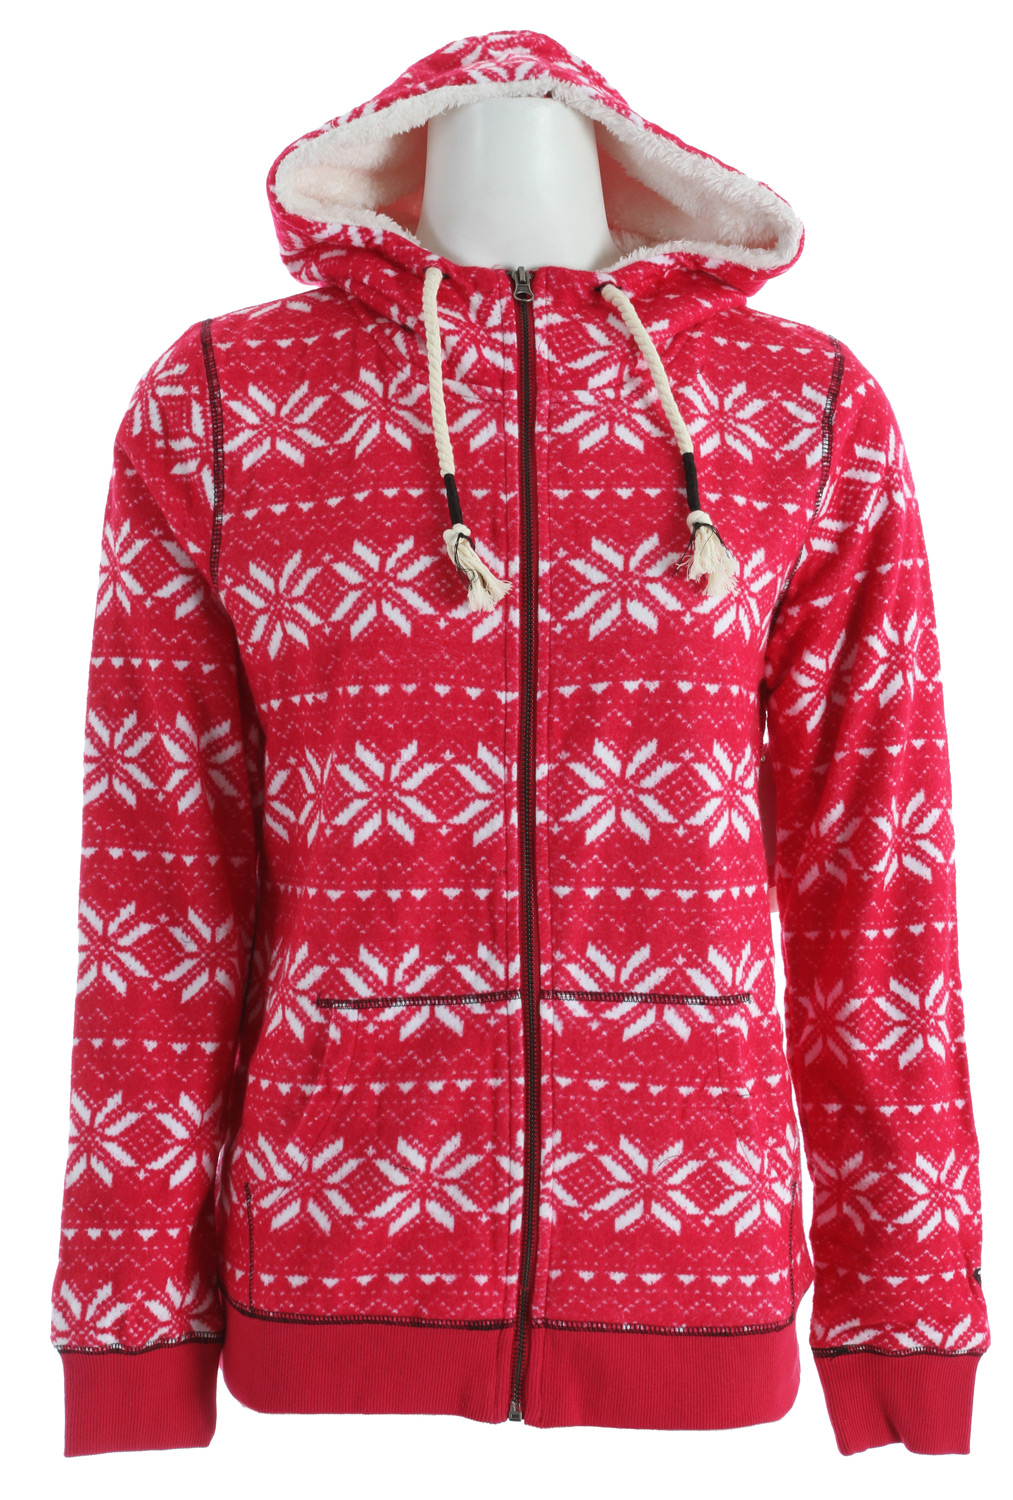 Surf Better get this now before the competition gets grizzly. Fair Isle print sweatshirt features warm sherpa lining at hood and body, and jersey lining at sleeves. Includes pouch pockets and a wrapped drawcord. 26-inch length.100% cotton reverse French terry. Machine wash. - $51.95